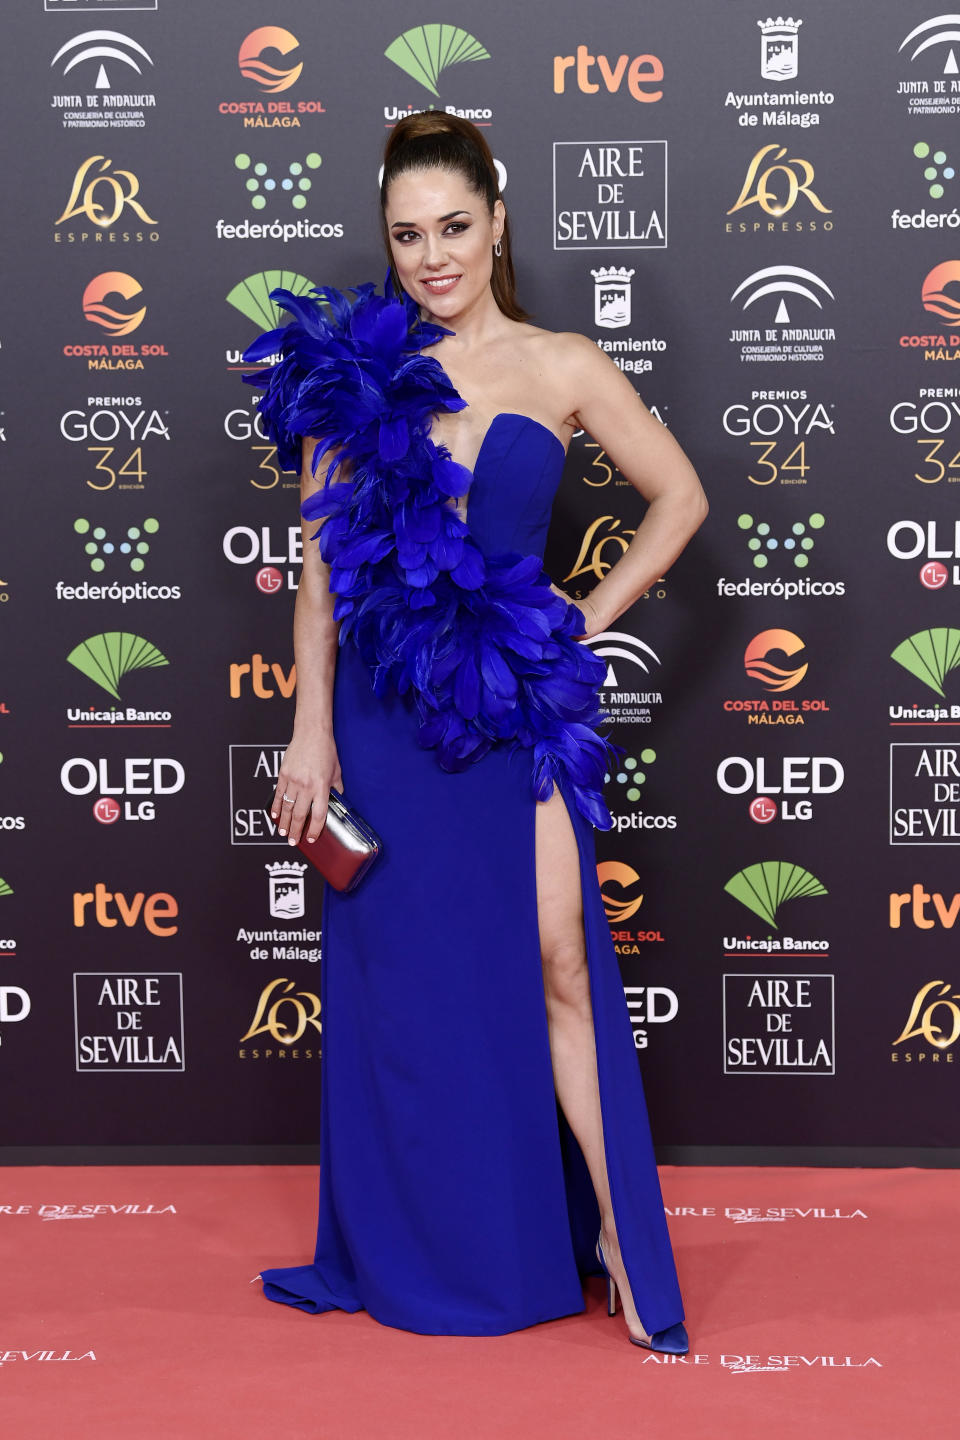 MALAGA, SPAIN - JANUARY 25: Eva Marciel attends the Goya Cinema Awards 2020 during the 34th edition of the Goya Cinema Awards at Jose Maria Martin Carpena Sports Palace on January 25, 2020 in Malaga, Spain. (Photo by Carlos Alvarez/Getty Images)